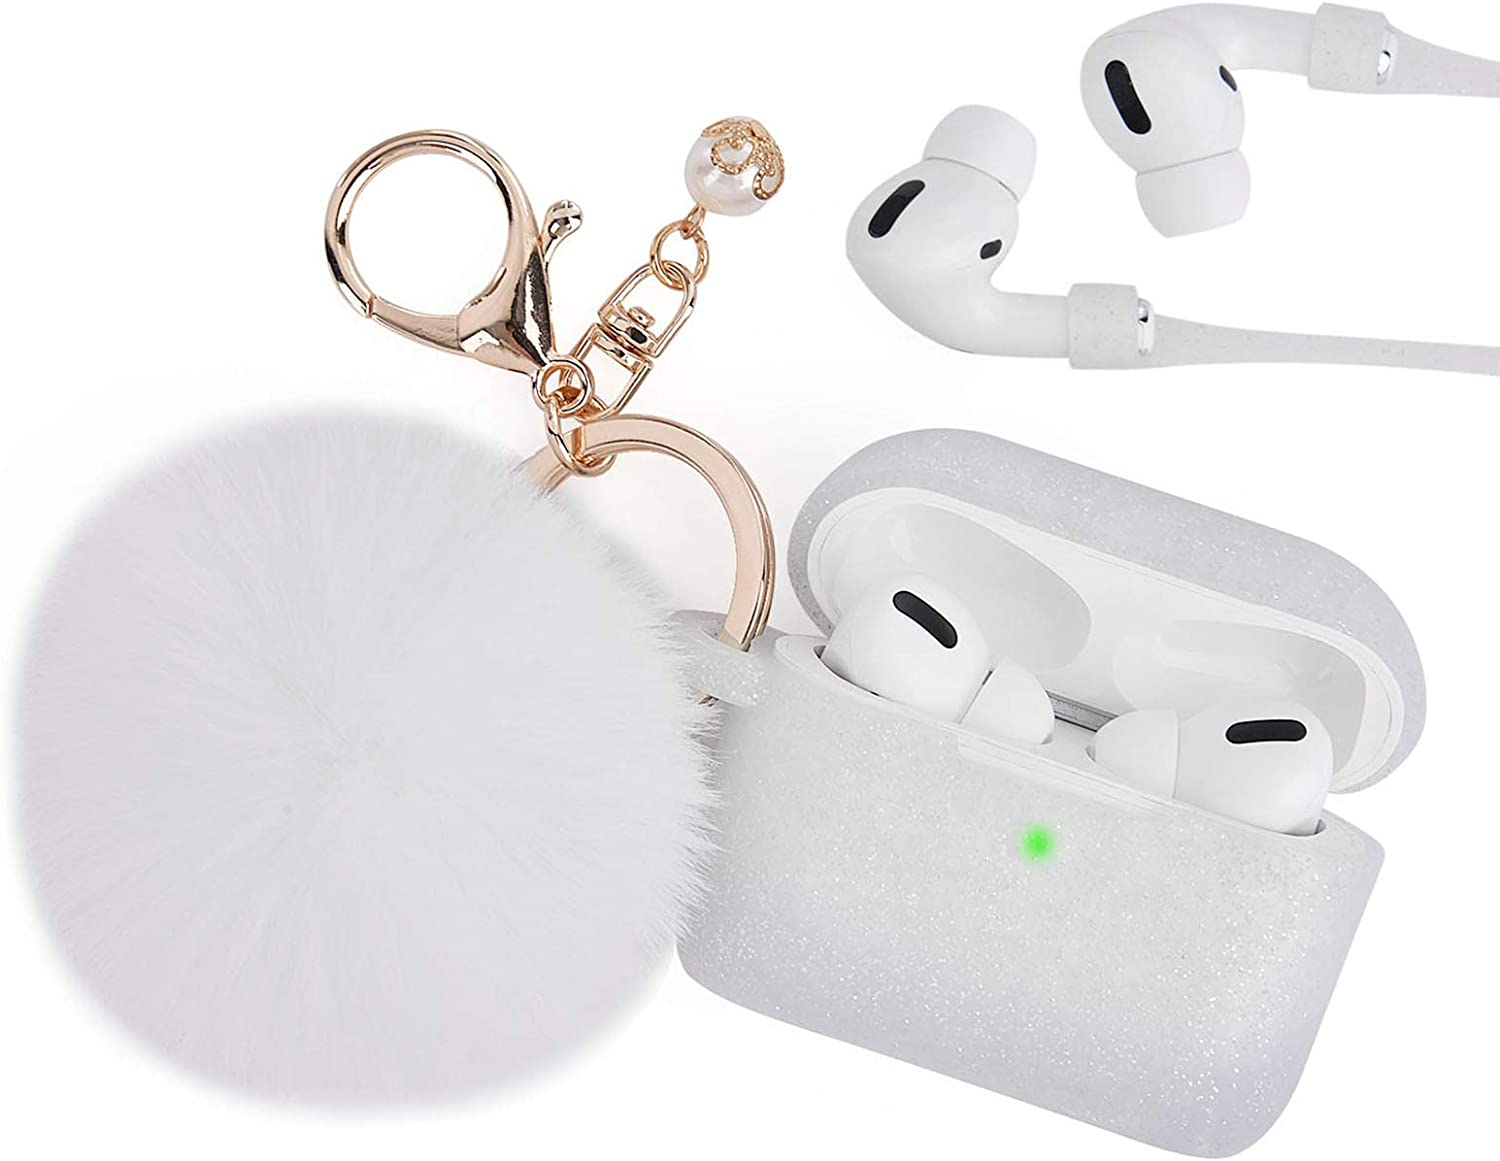 Case for Airpods Pro, Filoto Airpod Pro Case Cover for Apple AirPods Pro Wireless Charging Case, Cute Air Pods 3 Case Silicone Protective Accessories Keychain/Pompom (Silver White 1)